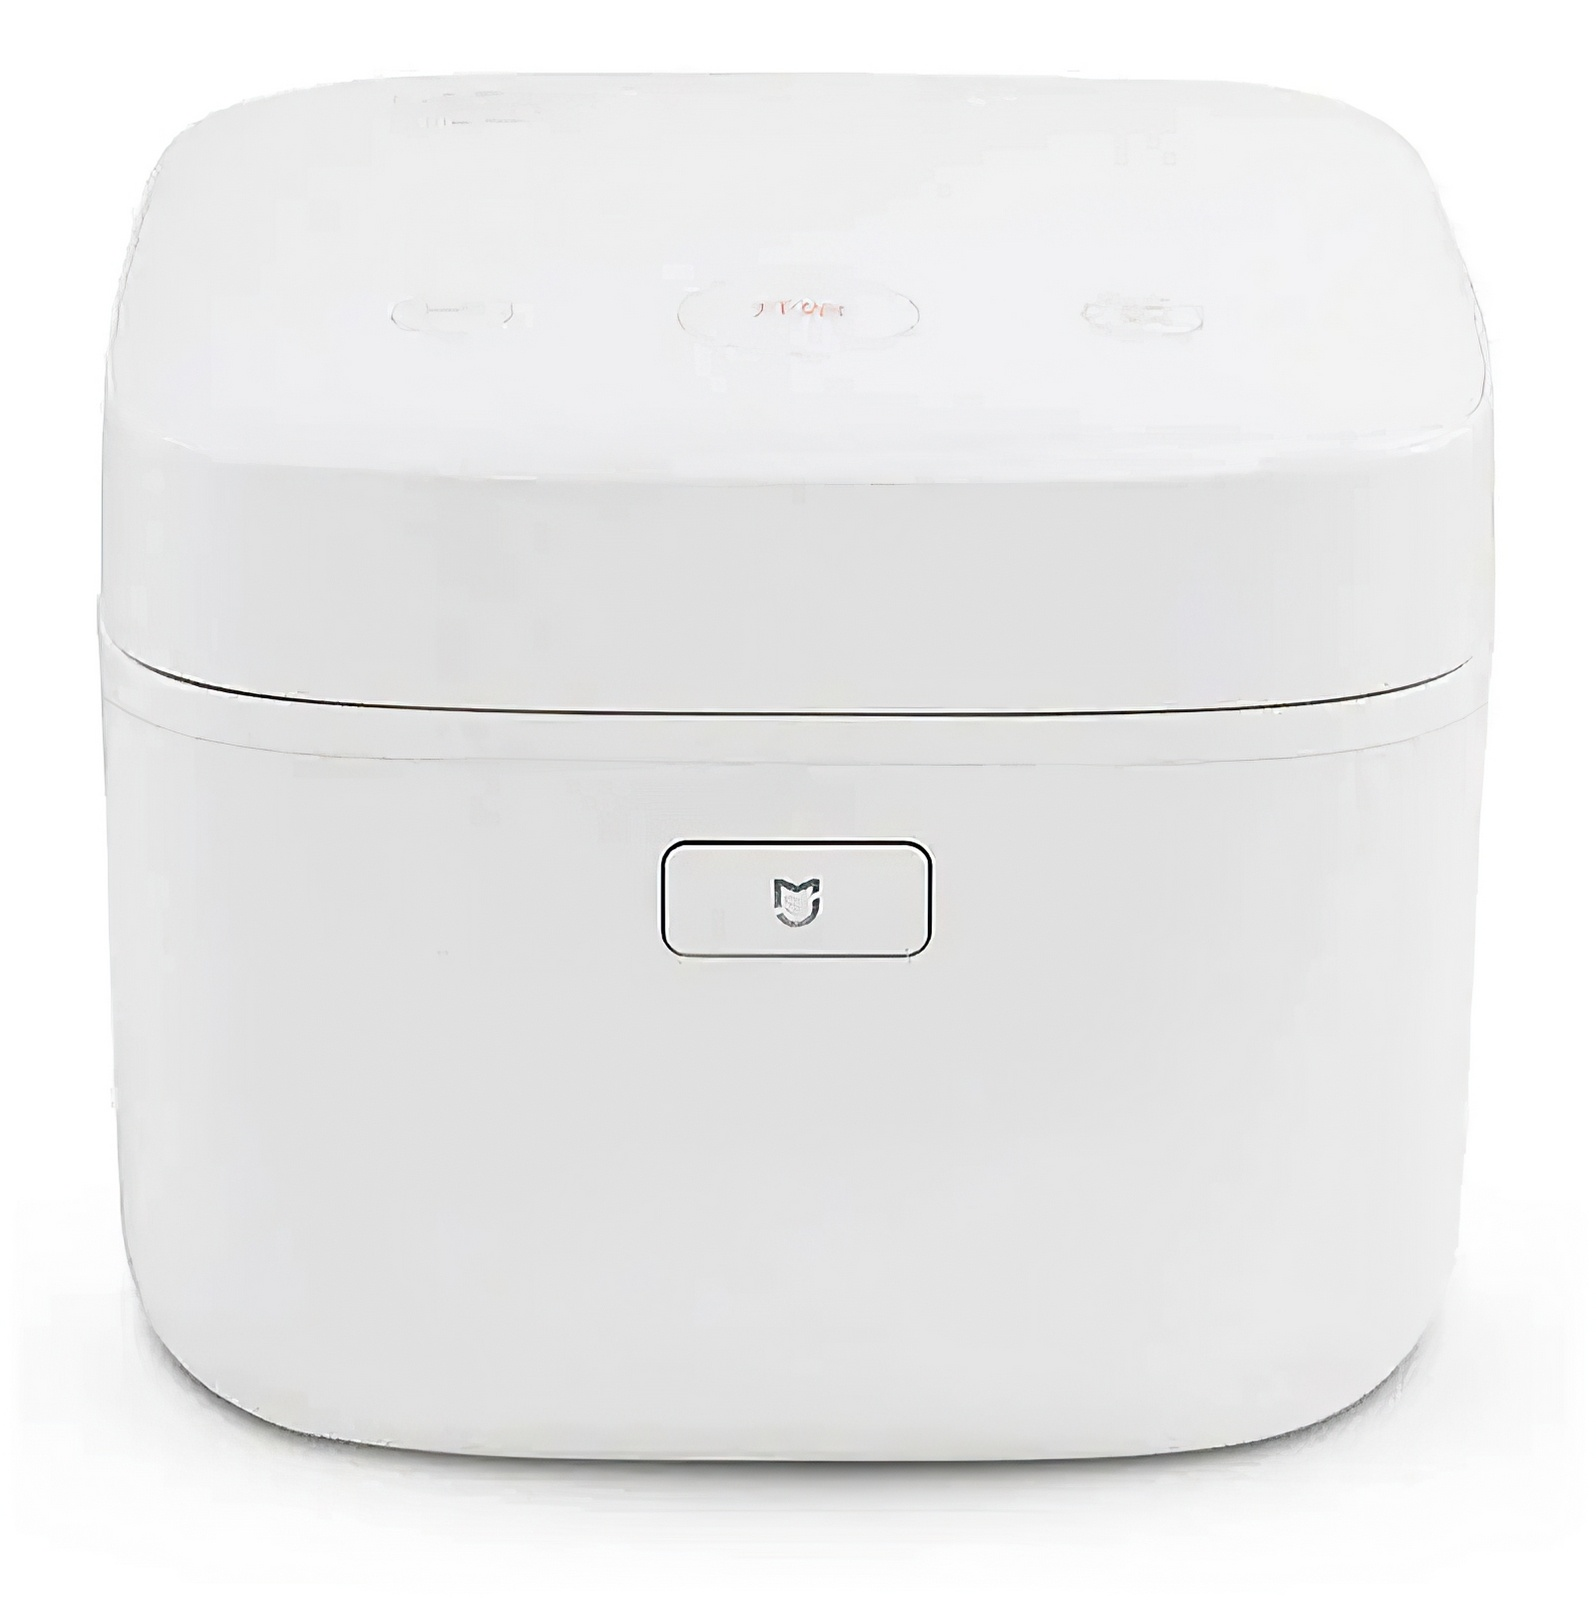 Xiaomi Mijia Induction Heating Rice Cooker 4L 1430W КАРКАМ